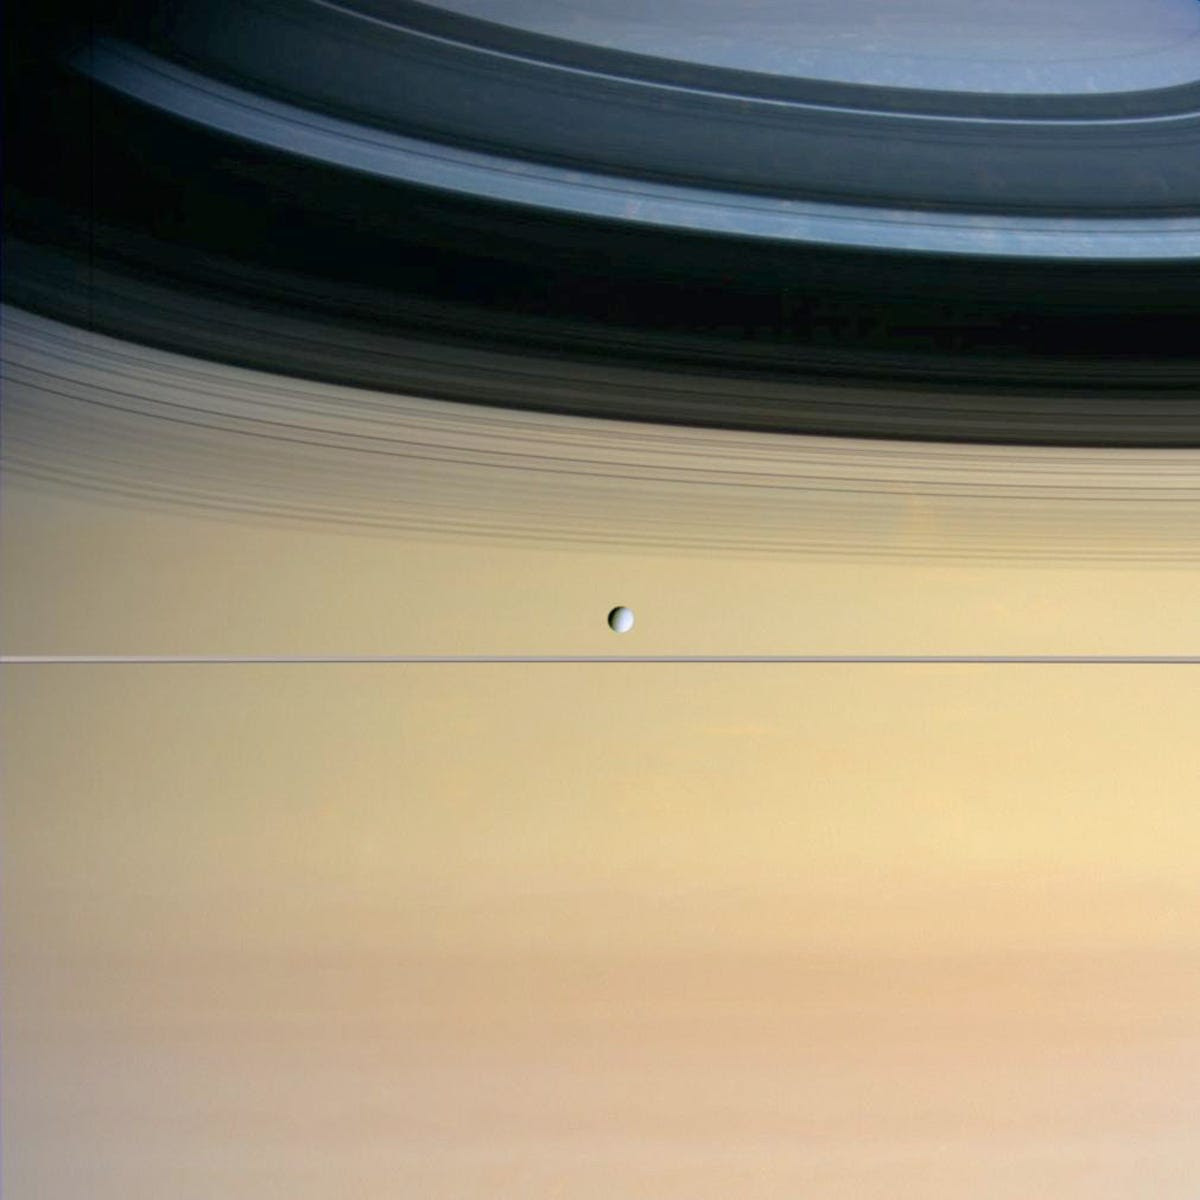 Dione, a small icy moon, is dominated by Saturn and its ring shadows in this image.